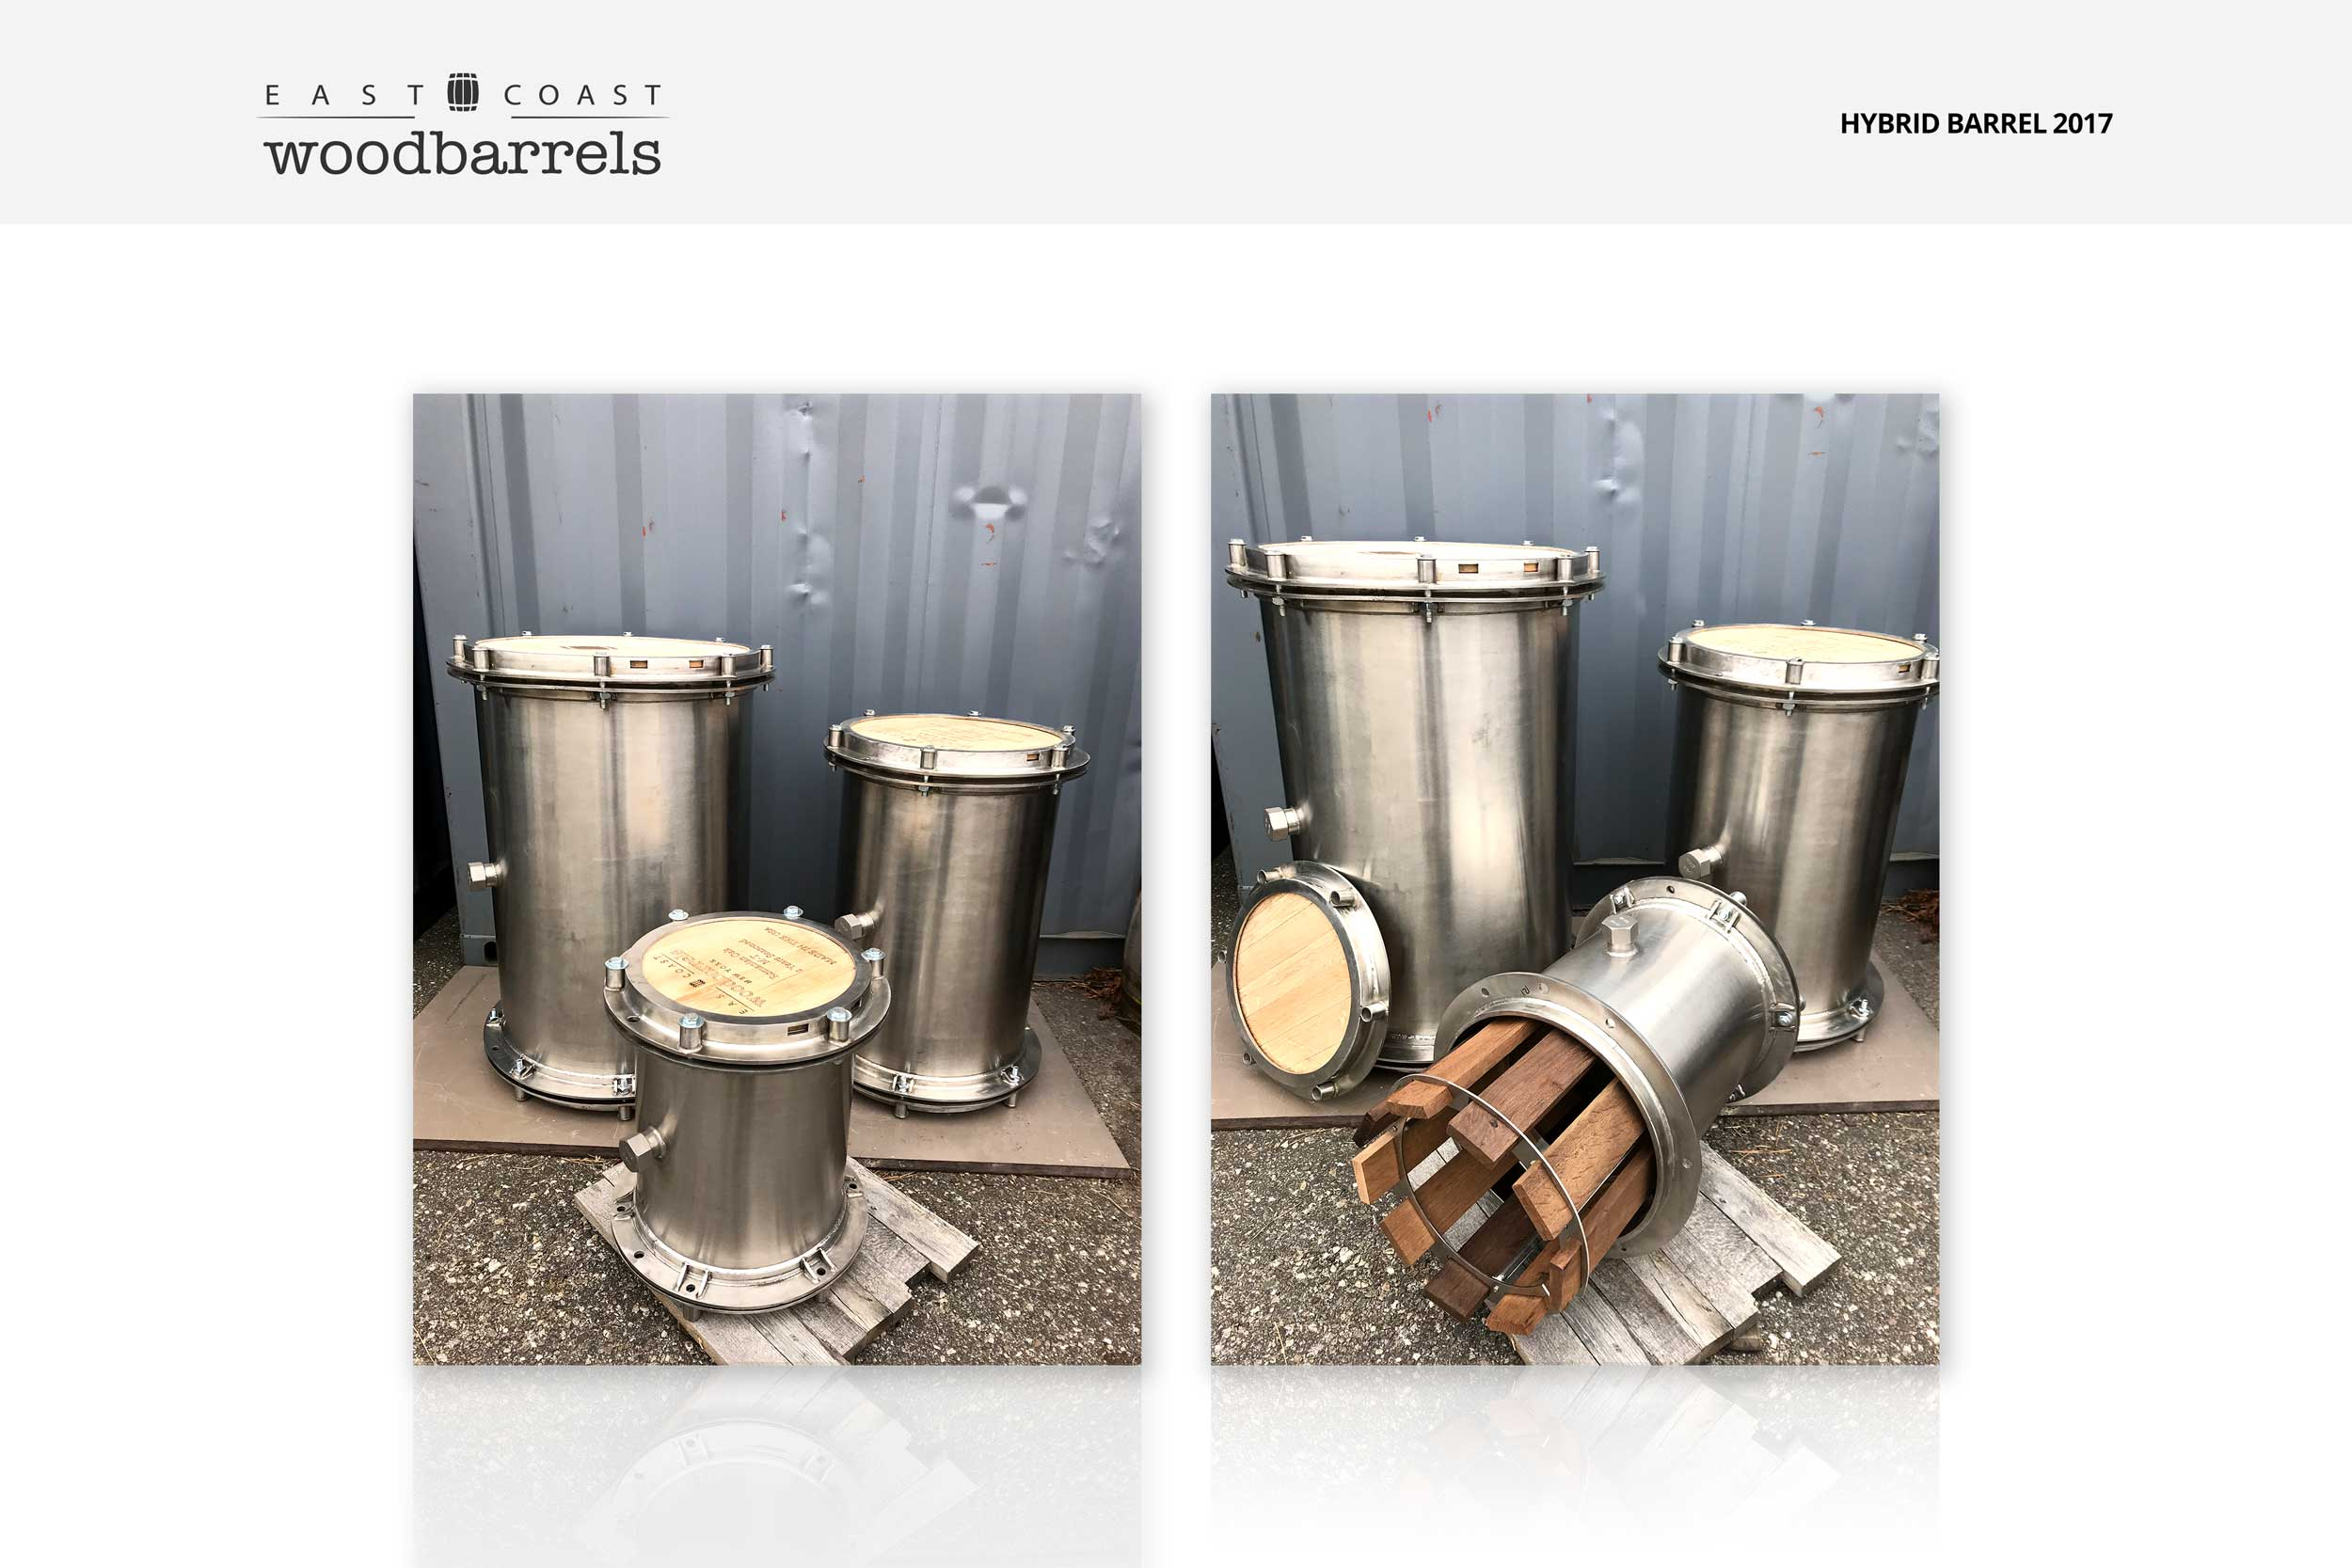 EAST-COAST-WOOD-BARRELS-WEB-IMAGES-v3ahb.jpg